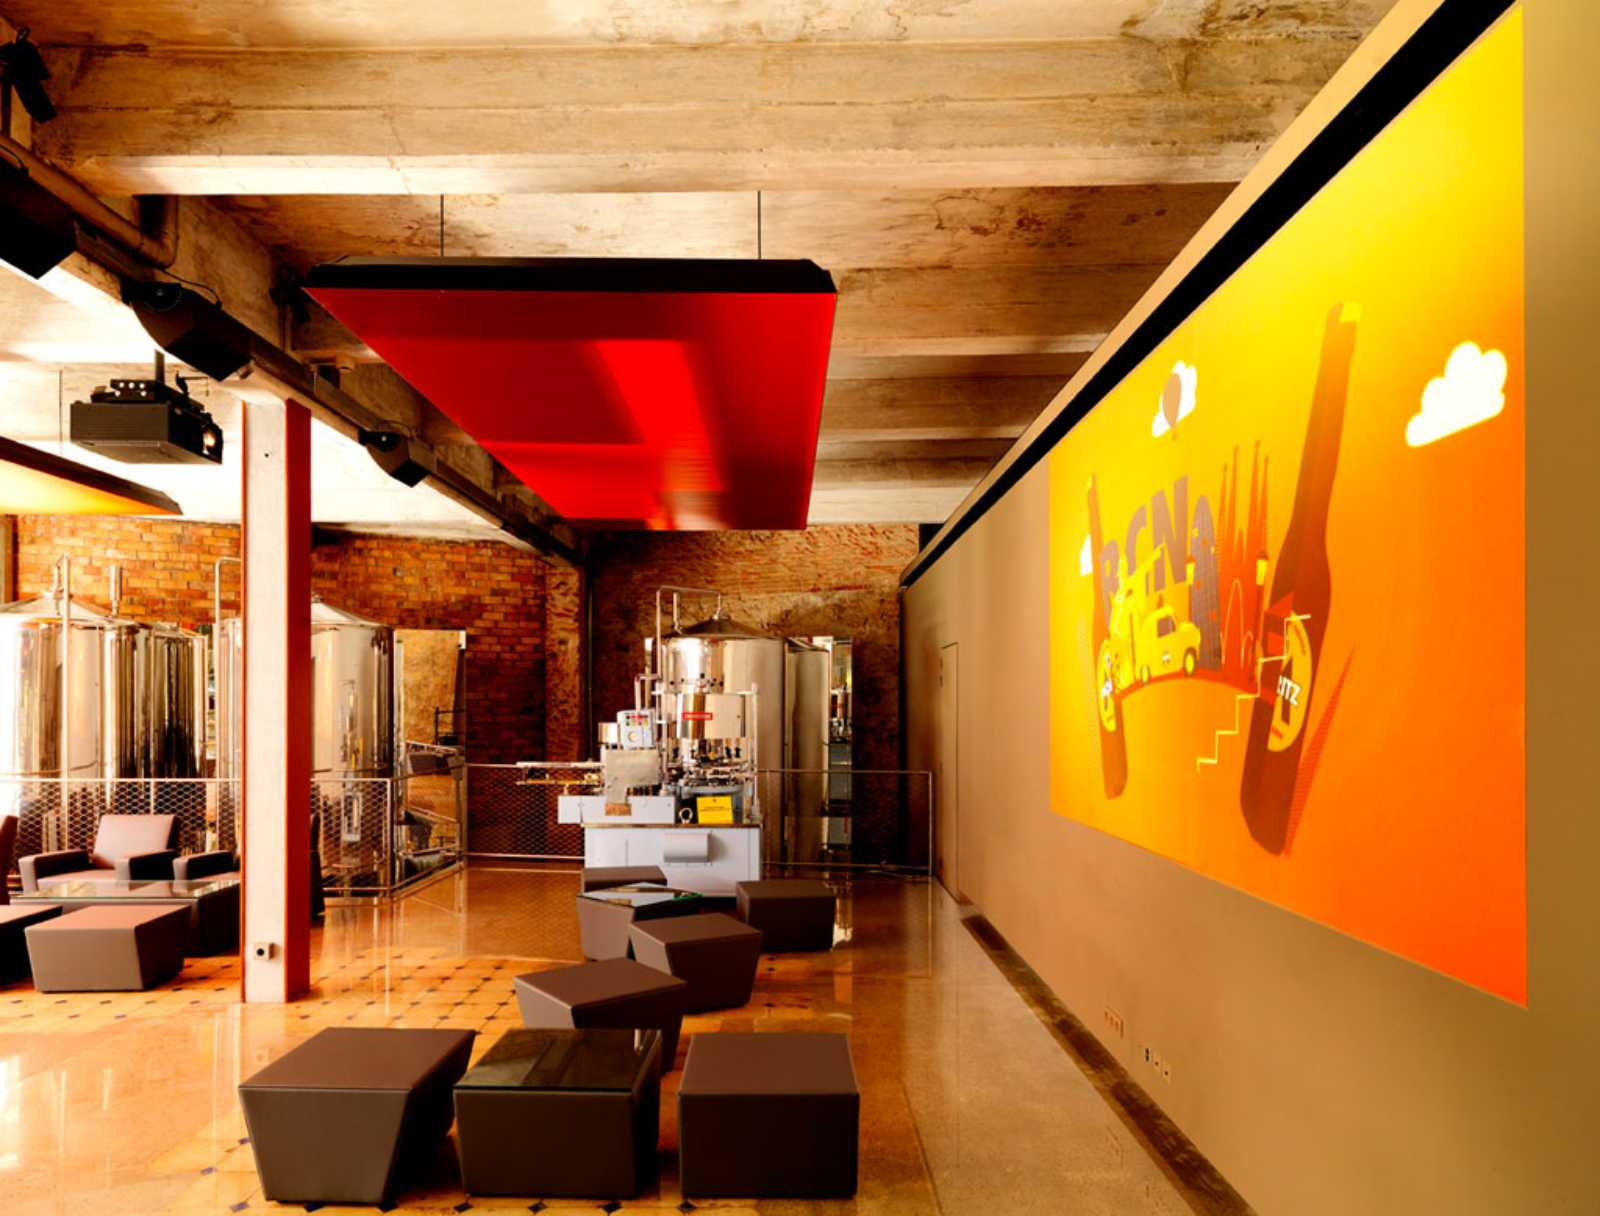 F 193 Brica Moritz Barcelona By Jean Nouvel Aasarchitecture